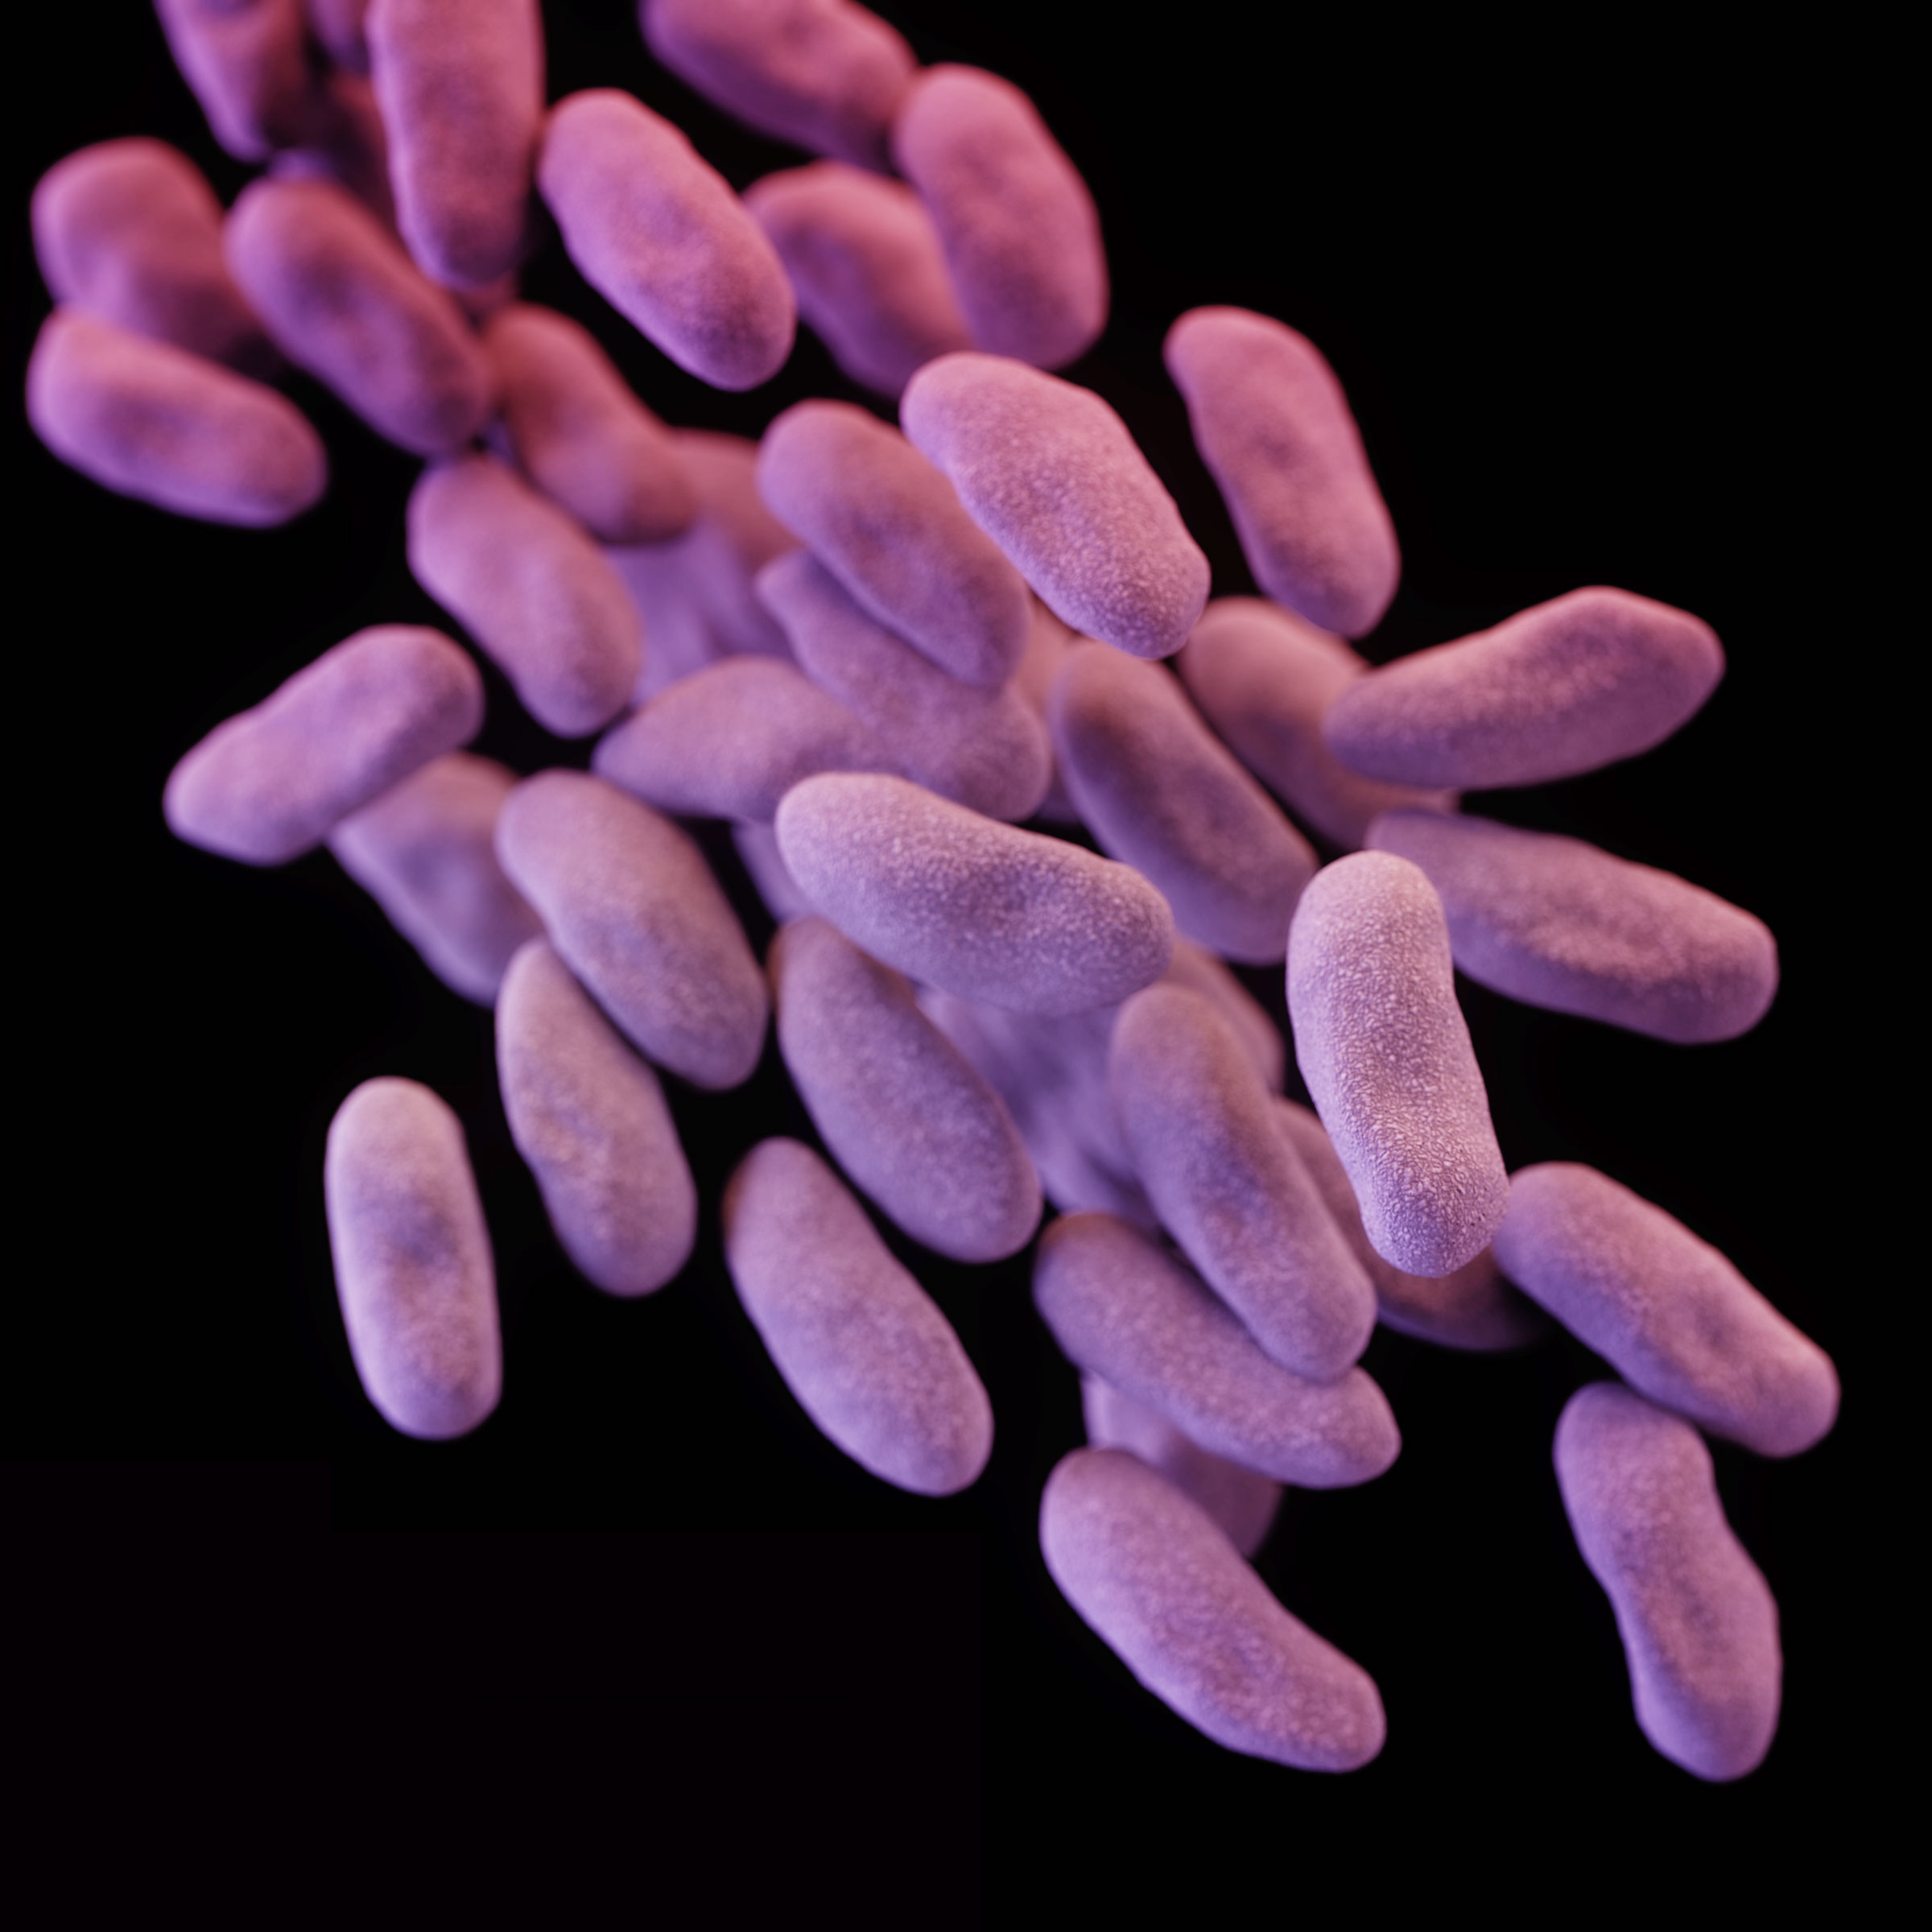 This illustration from the Centers for Disease Control shows a group of CRE bacteria.